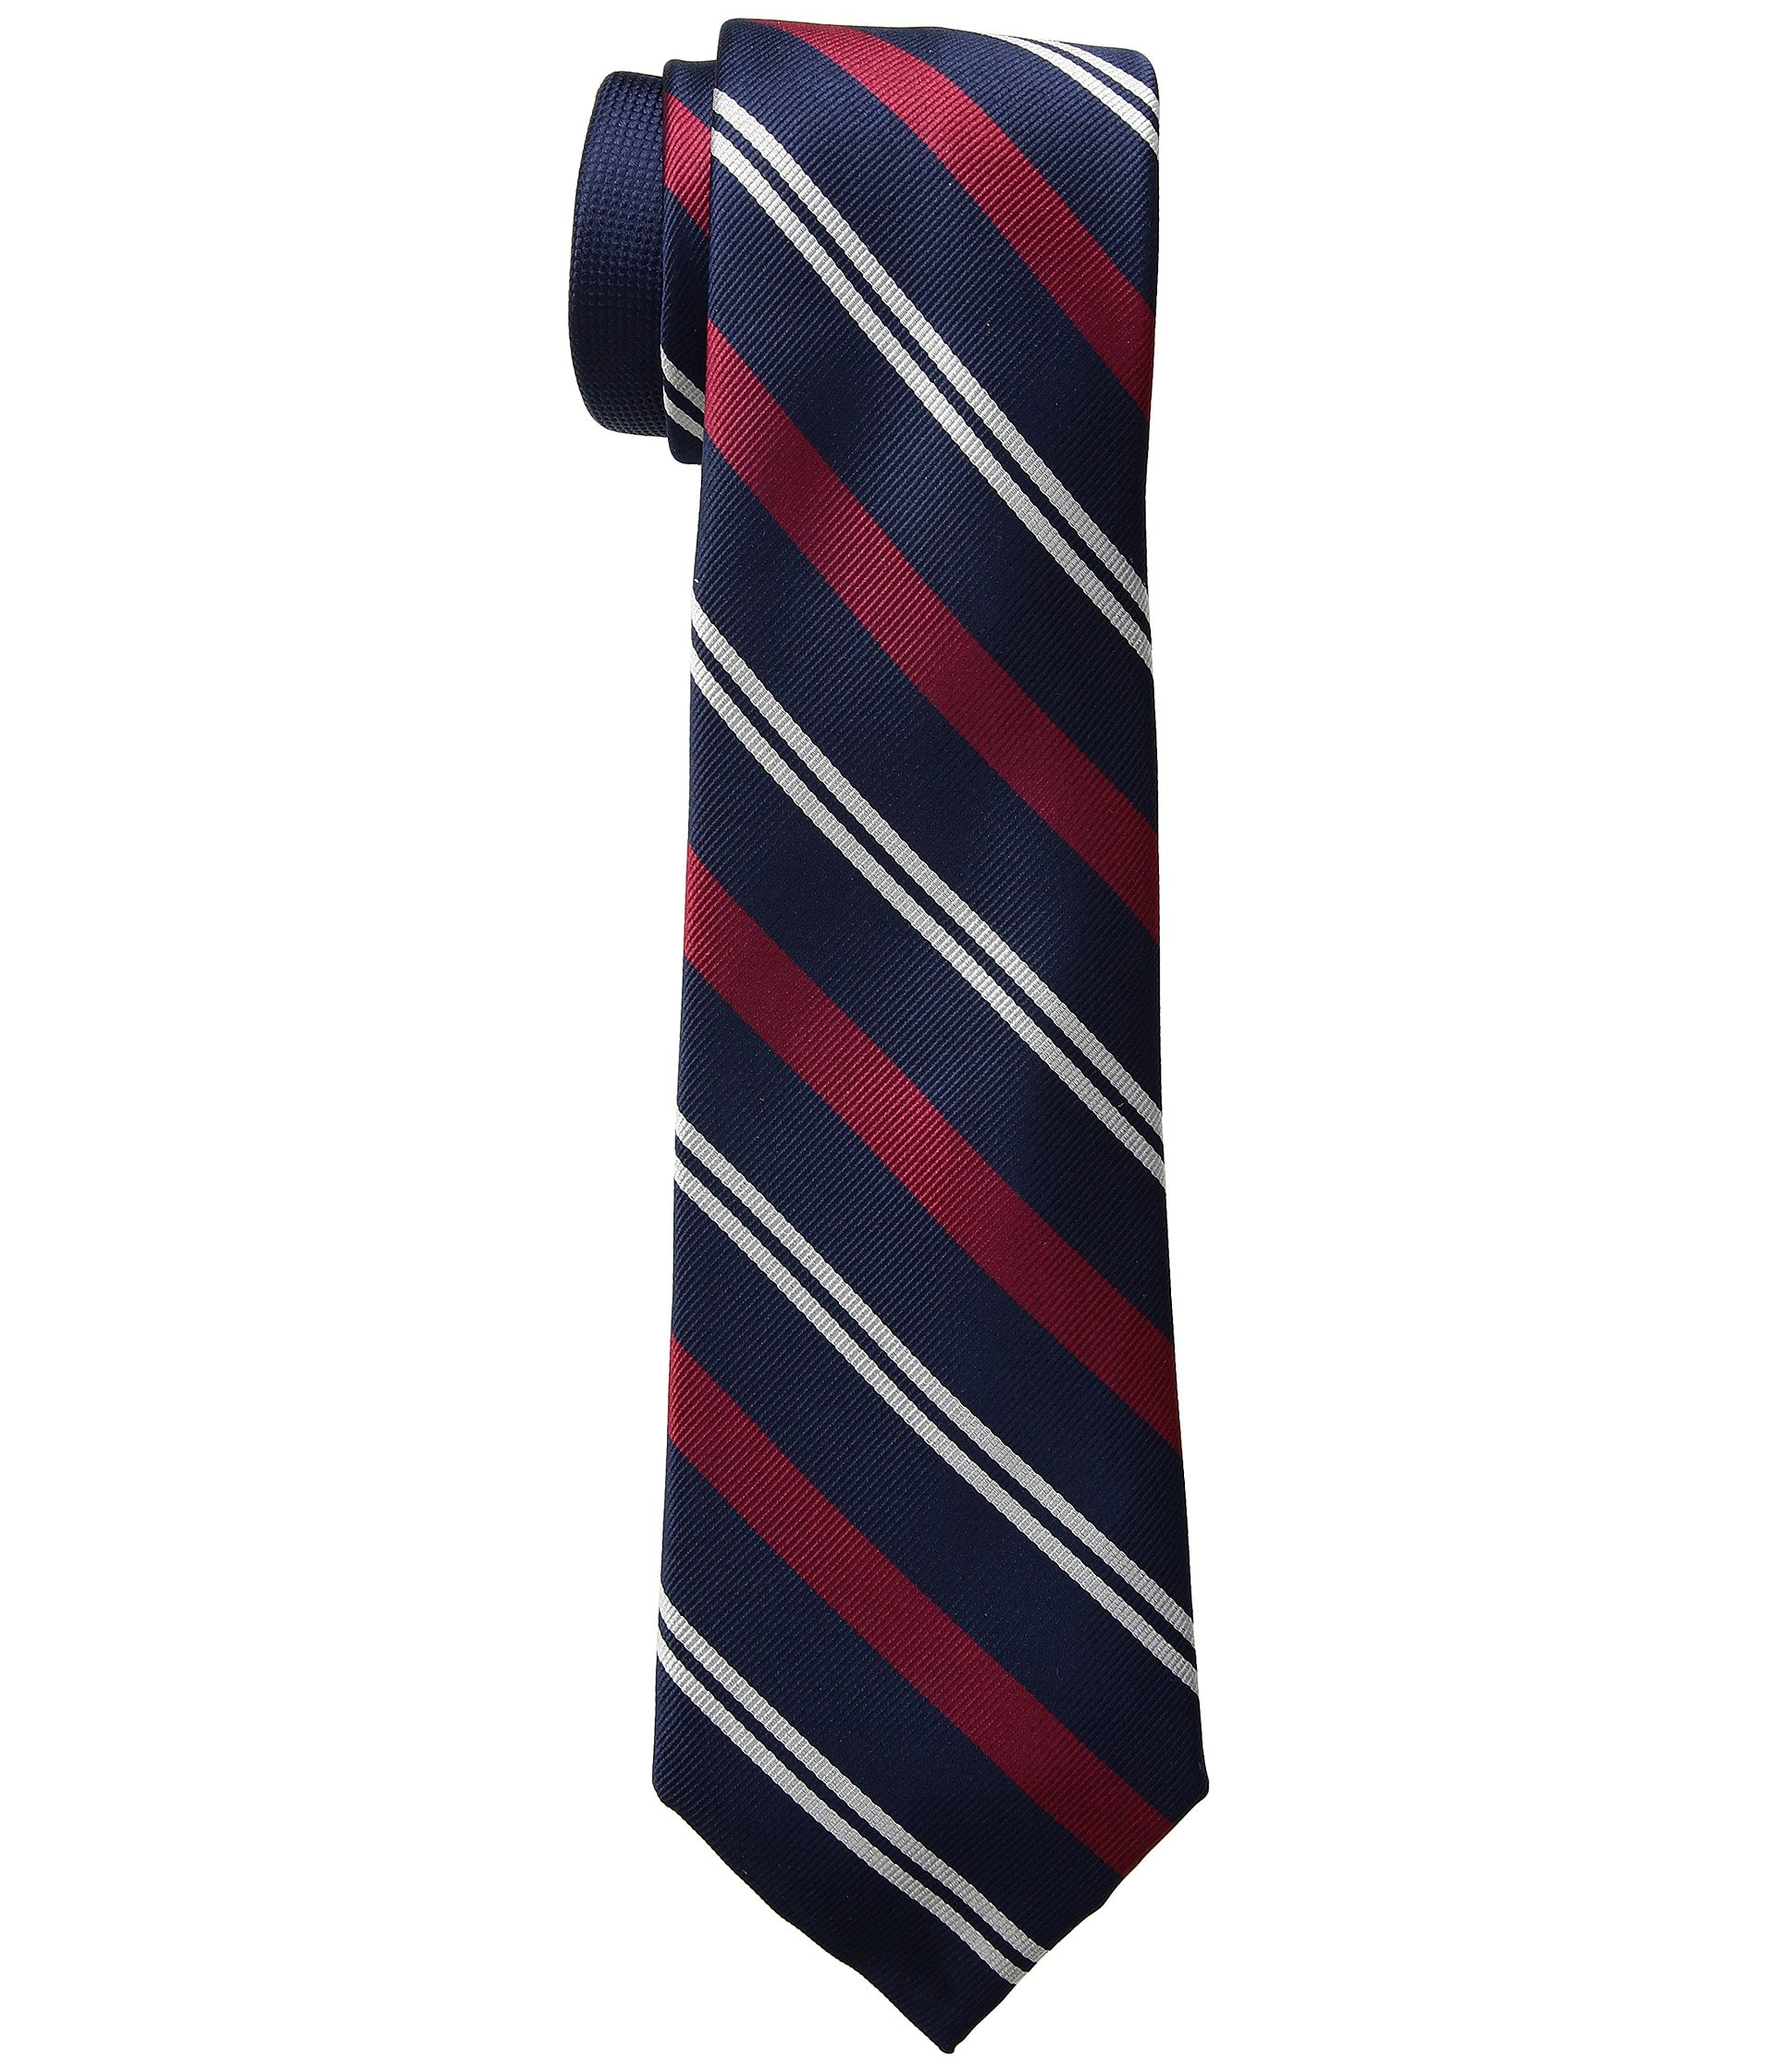 Corbata para Hombre Tommy Hilfiger Two-Tone Stripe  + Tommy Hilfiger en VeoyCompro.net